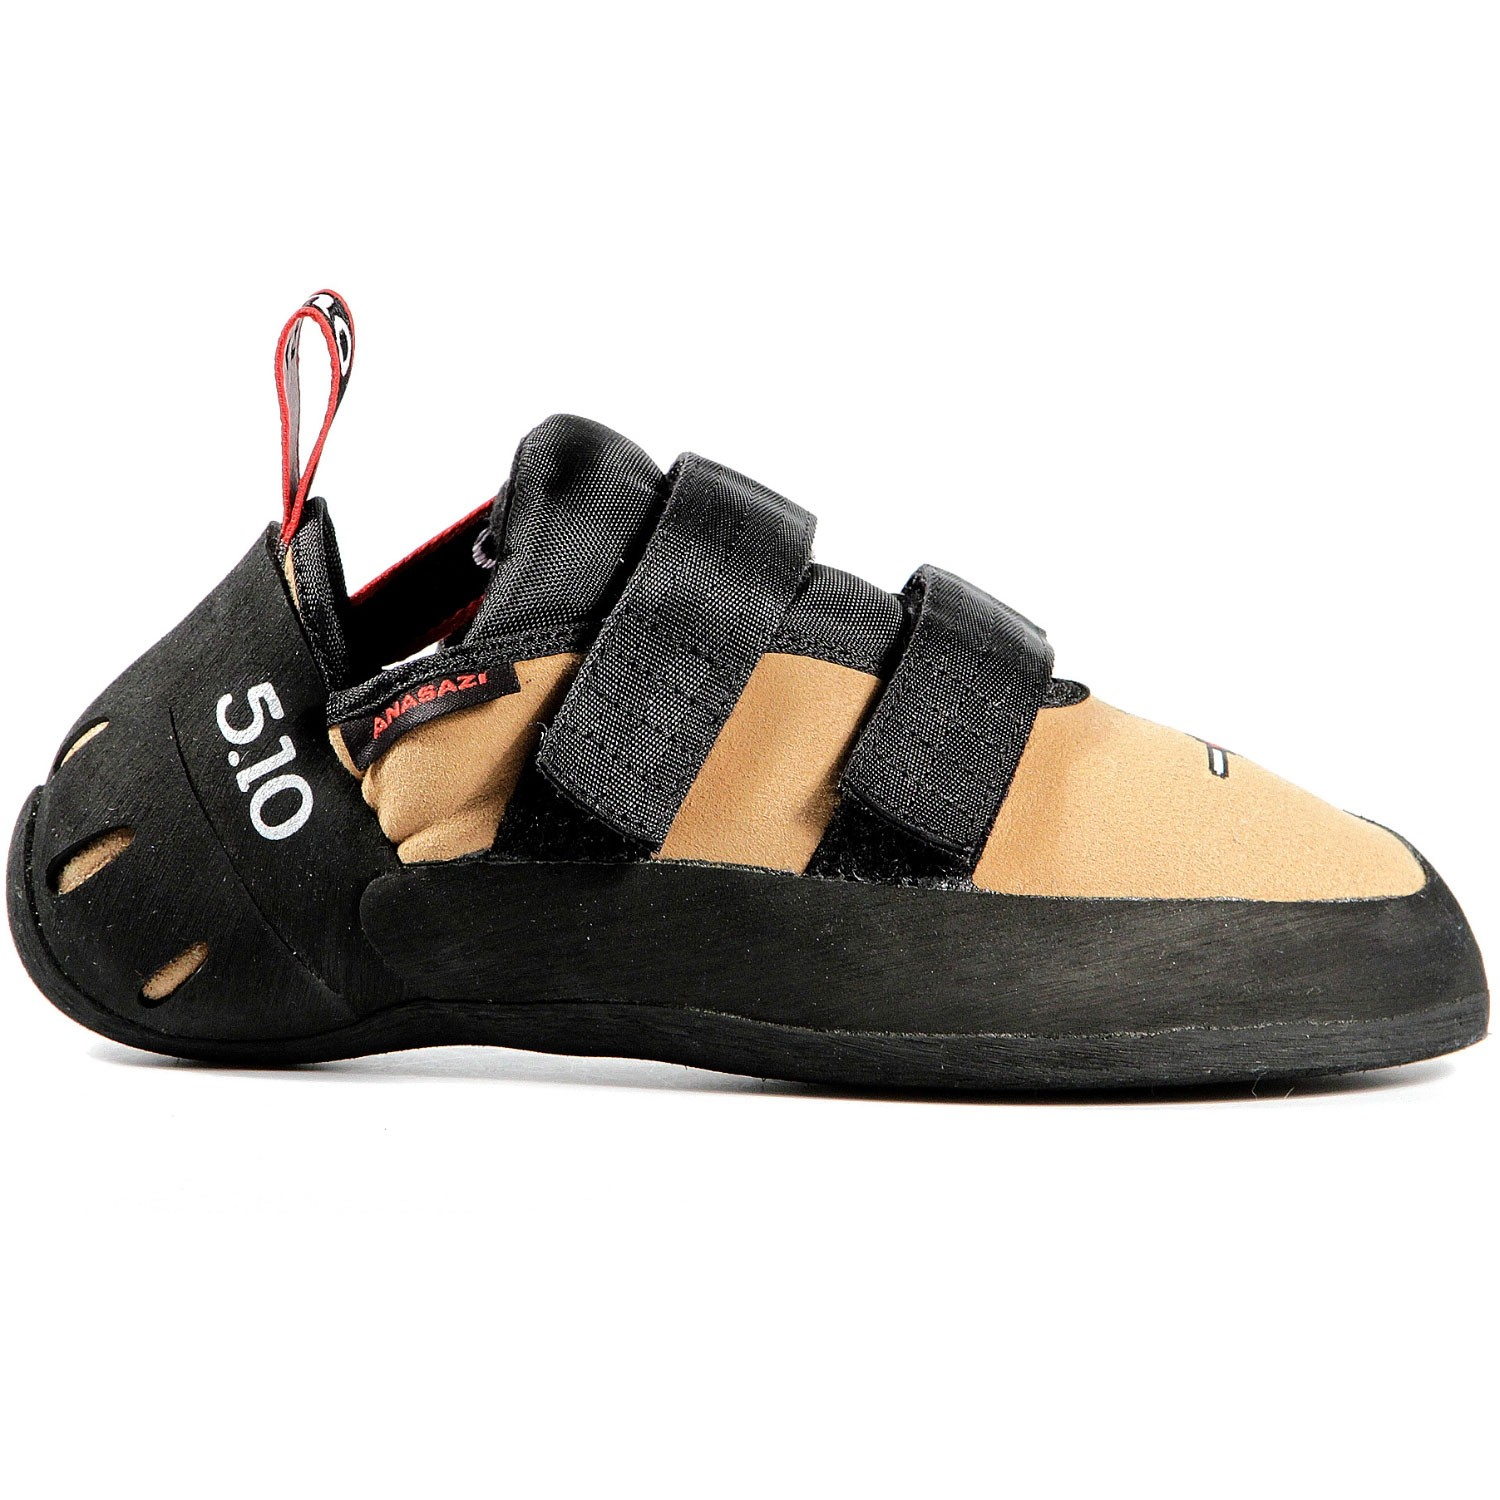 Five.Ten Anasazi Velcro Climbing Shoes - Golden Tan - 1